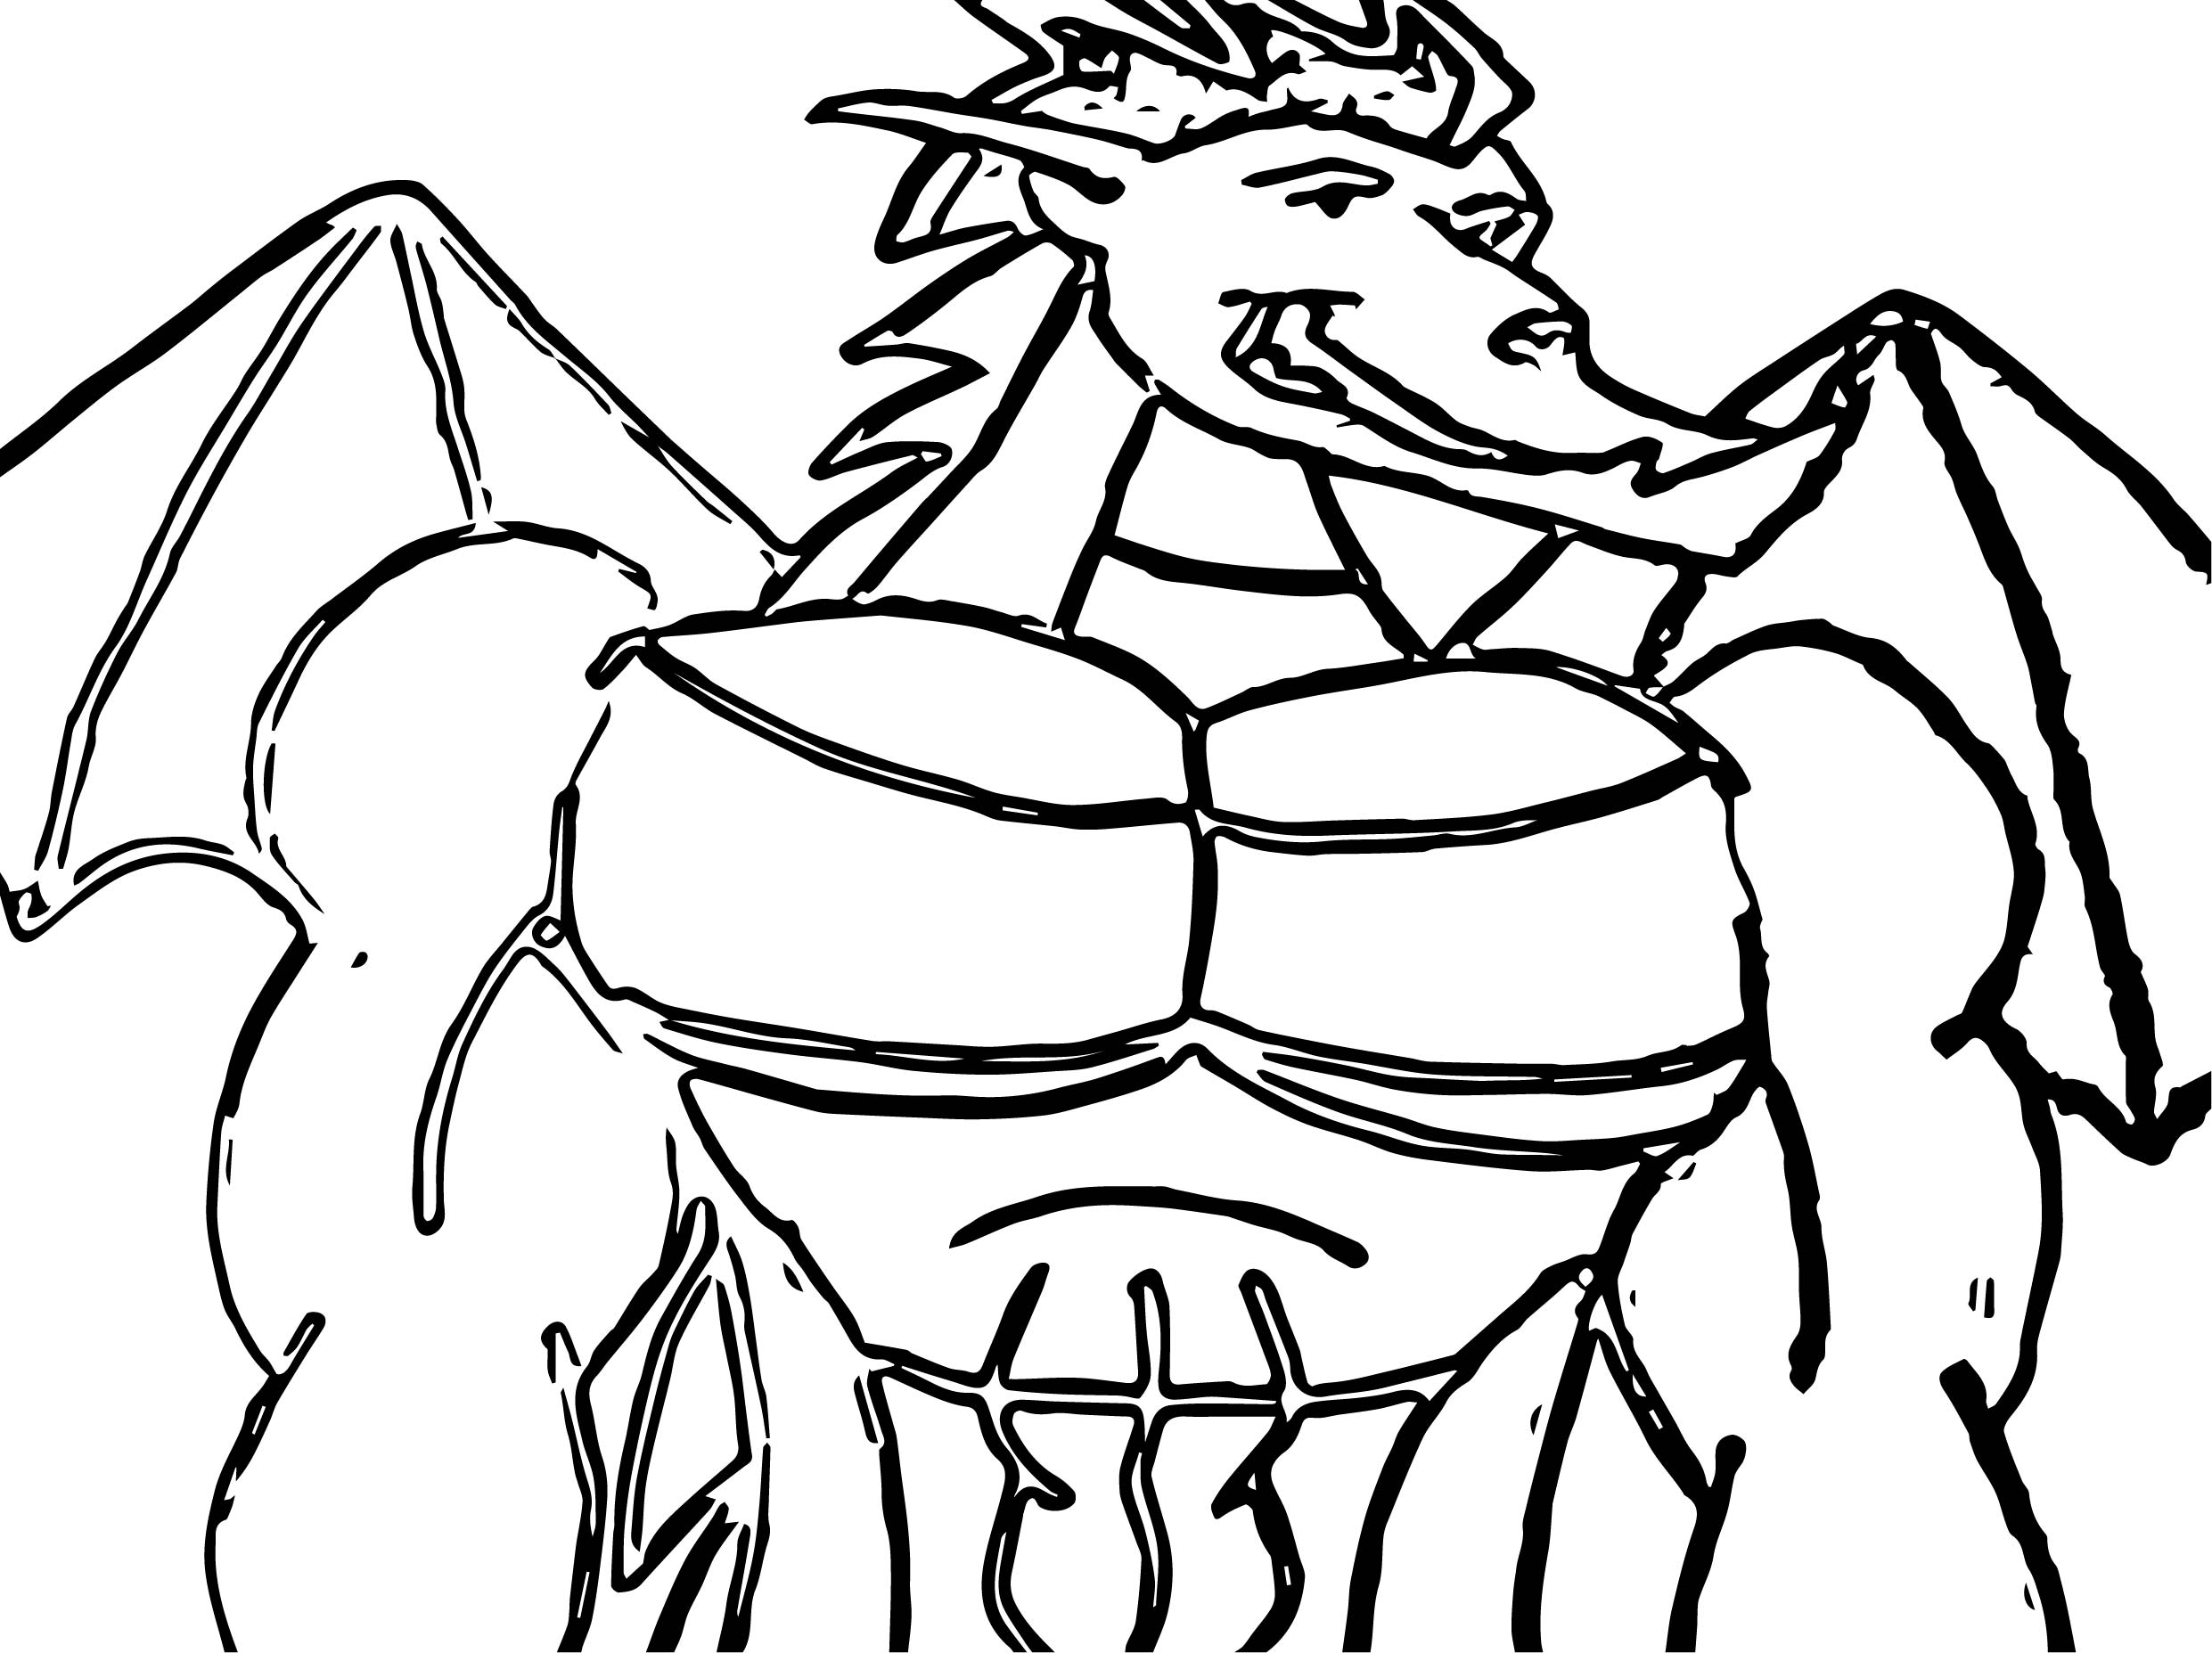 American Dragon Muscle 2 Coloring Page